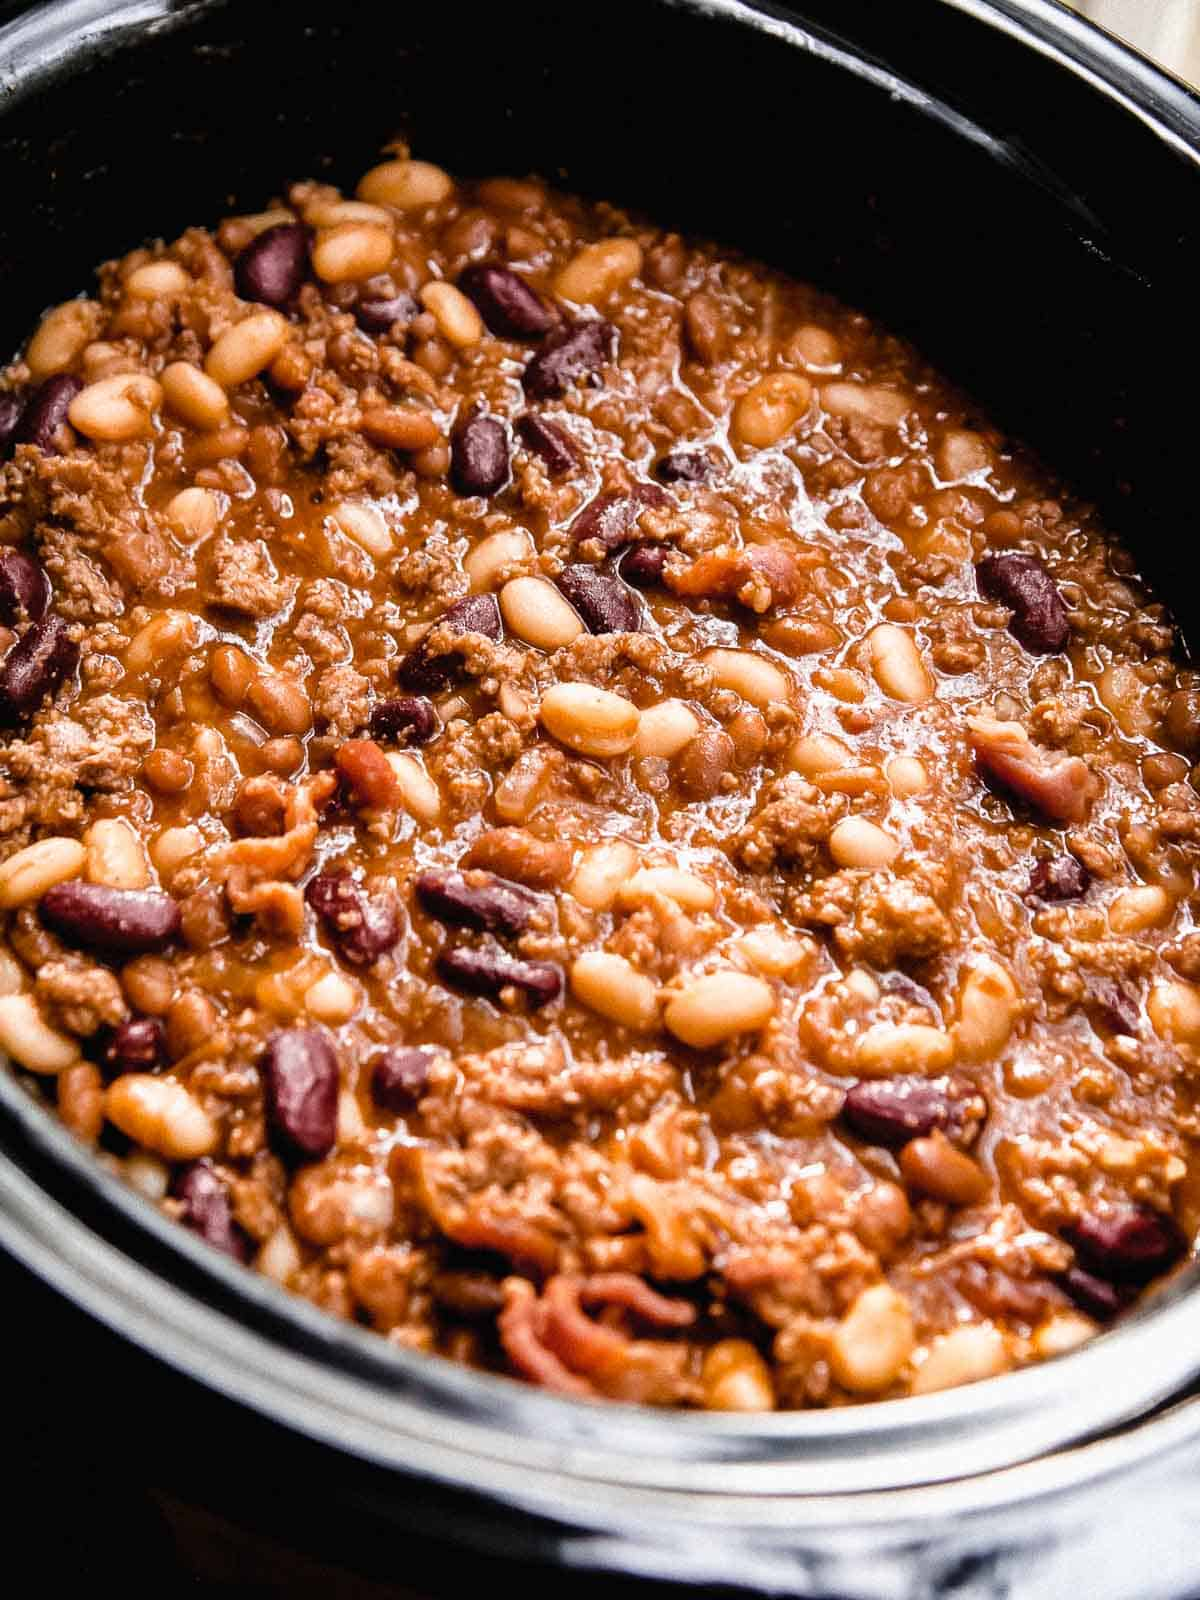 Calico beans in a slow cooker.